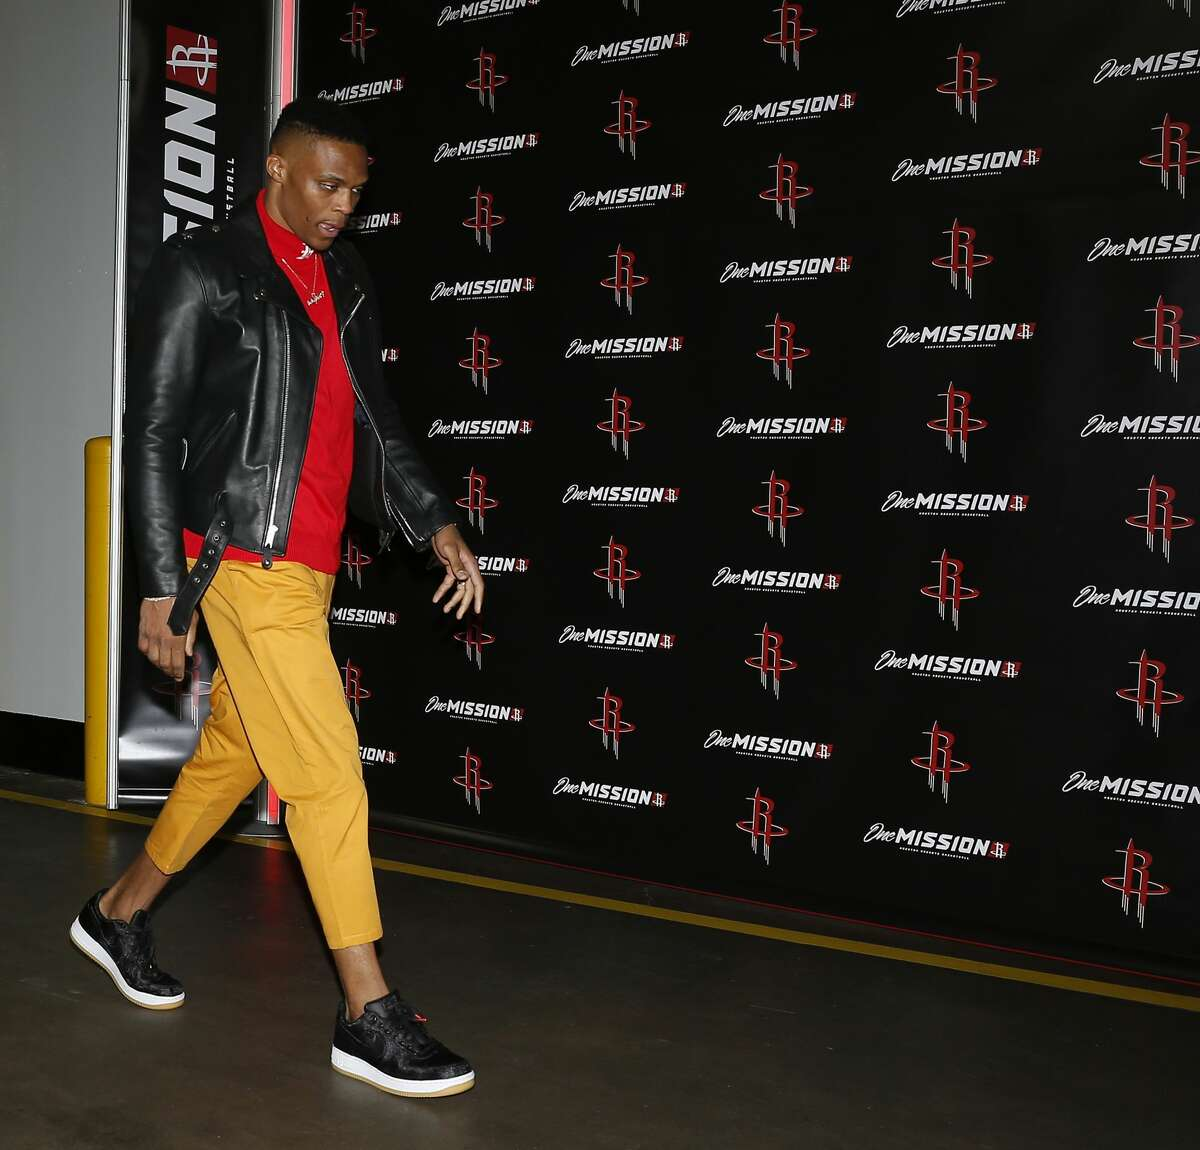 HOUSTON, TEXAS - NOVEMBER 15: Russell Westbrook #0 of the Houston Rockets arrives at Toyota Center before playing the Indiana Pacers on November 15, 2019 in Houston, Texas. NOTE TO USER: User expressly acknowledges and agrees that, by downloading and/or using this photograph, user is consenting to the terms and conditions of the Getty Images License Agreement. (Photo by Bob Levey/Getty Images)